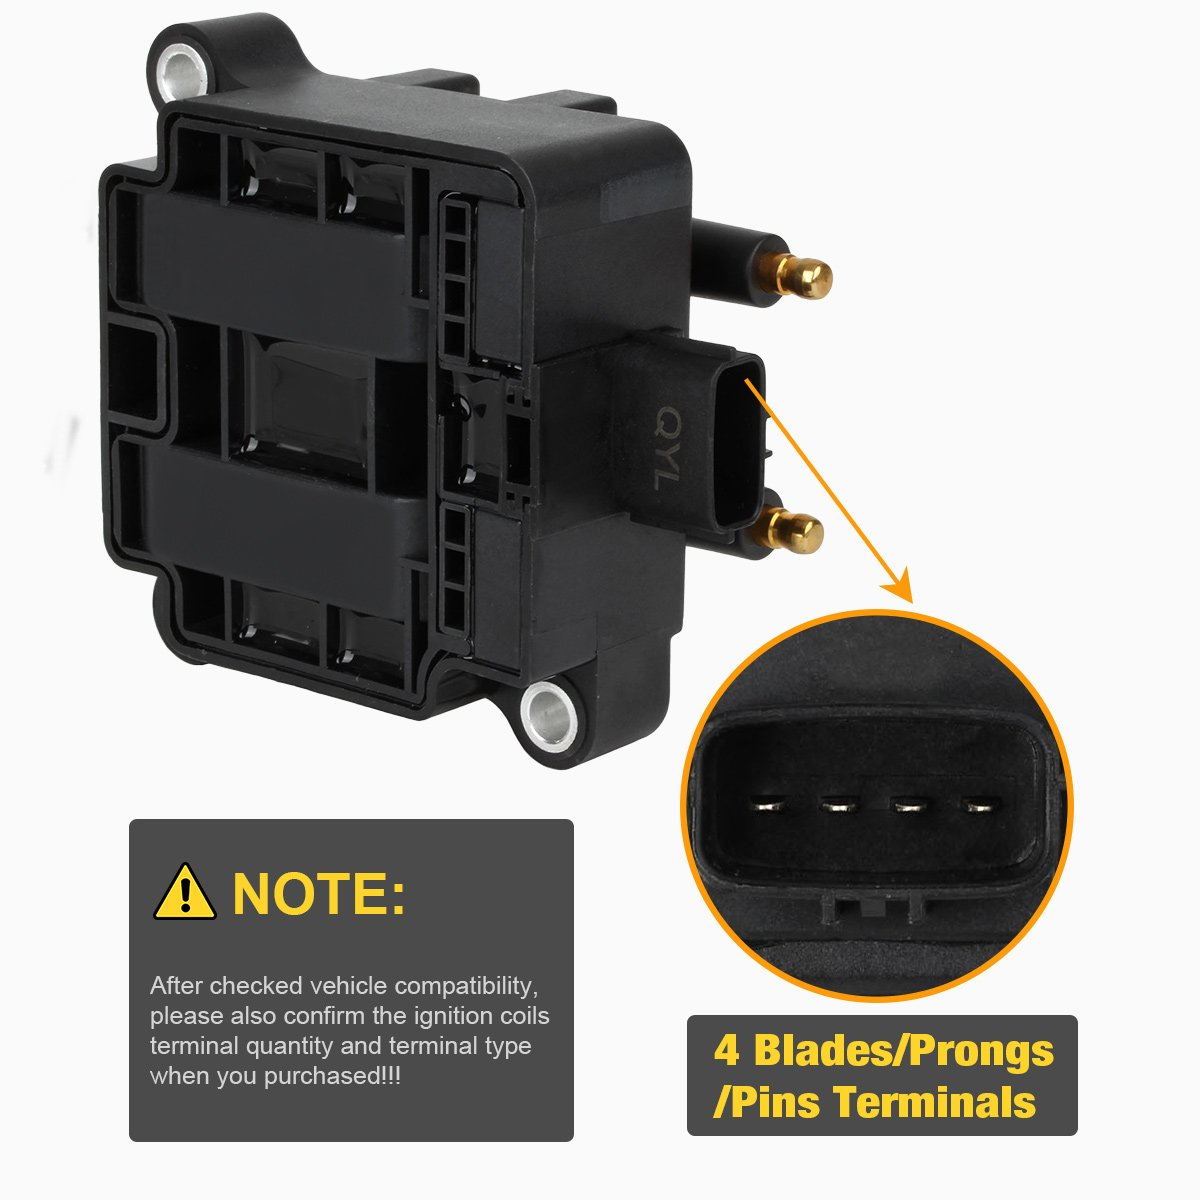 Ignition Coil Pack With 4 Pins For Subaru 22l 25l Wiring Diagram Compatible C1228 Uf240 22433 Aa410 Aa570 Automotive